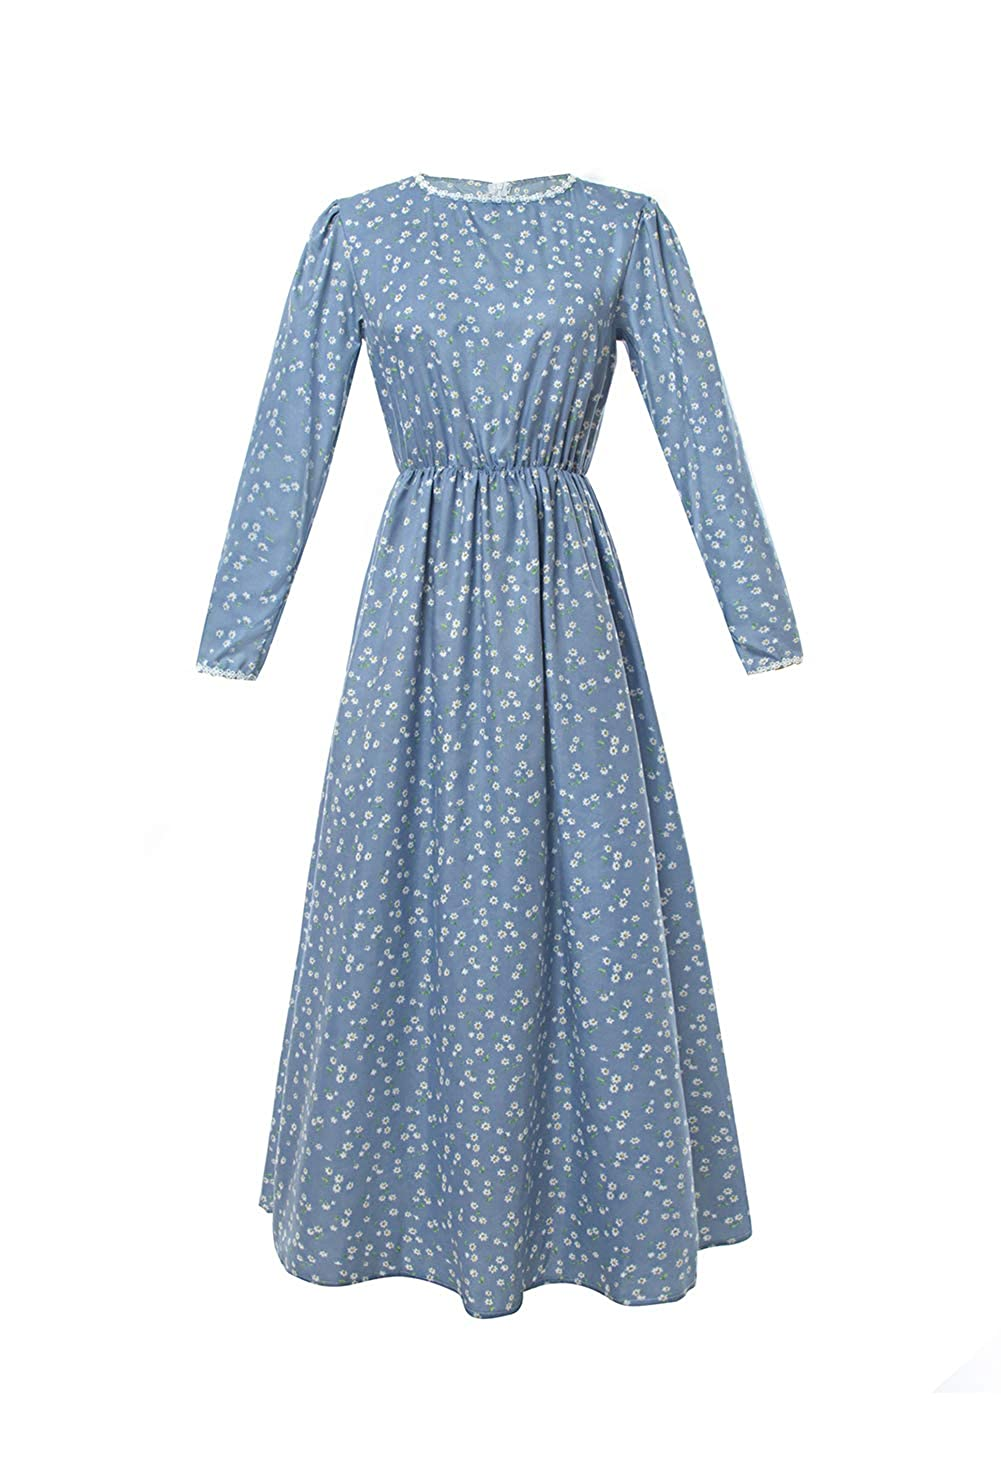 Cottagecore Clothing, Soft Aesthetic 1890-1915 Pioneer Women Costume Floral Prairie Dress Deluxe Colonial Dress Laura Ingalls Costume $35.99 AT vintagedancer.com